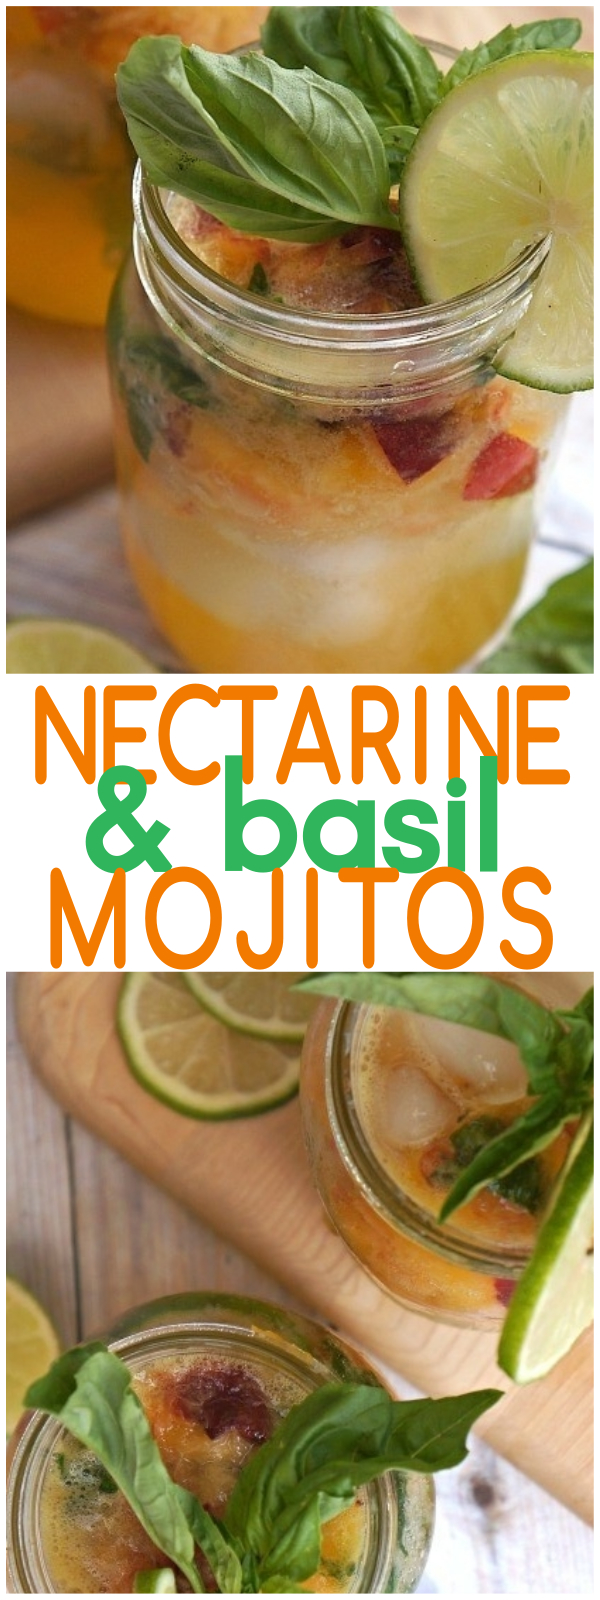 Nectarine Mojitos With Basil Cocktail - The Perfect Summer Drink - nectarine juice | basil cocktails | nectarine recipes | basil rum cocktails